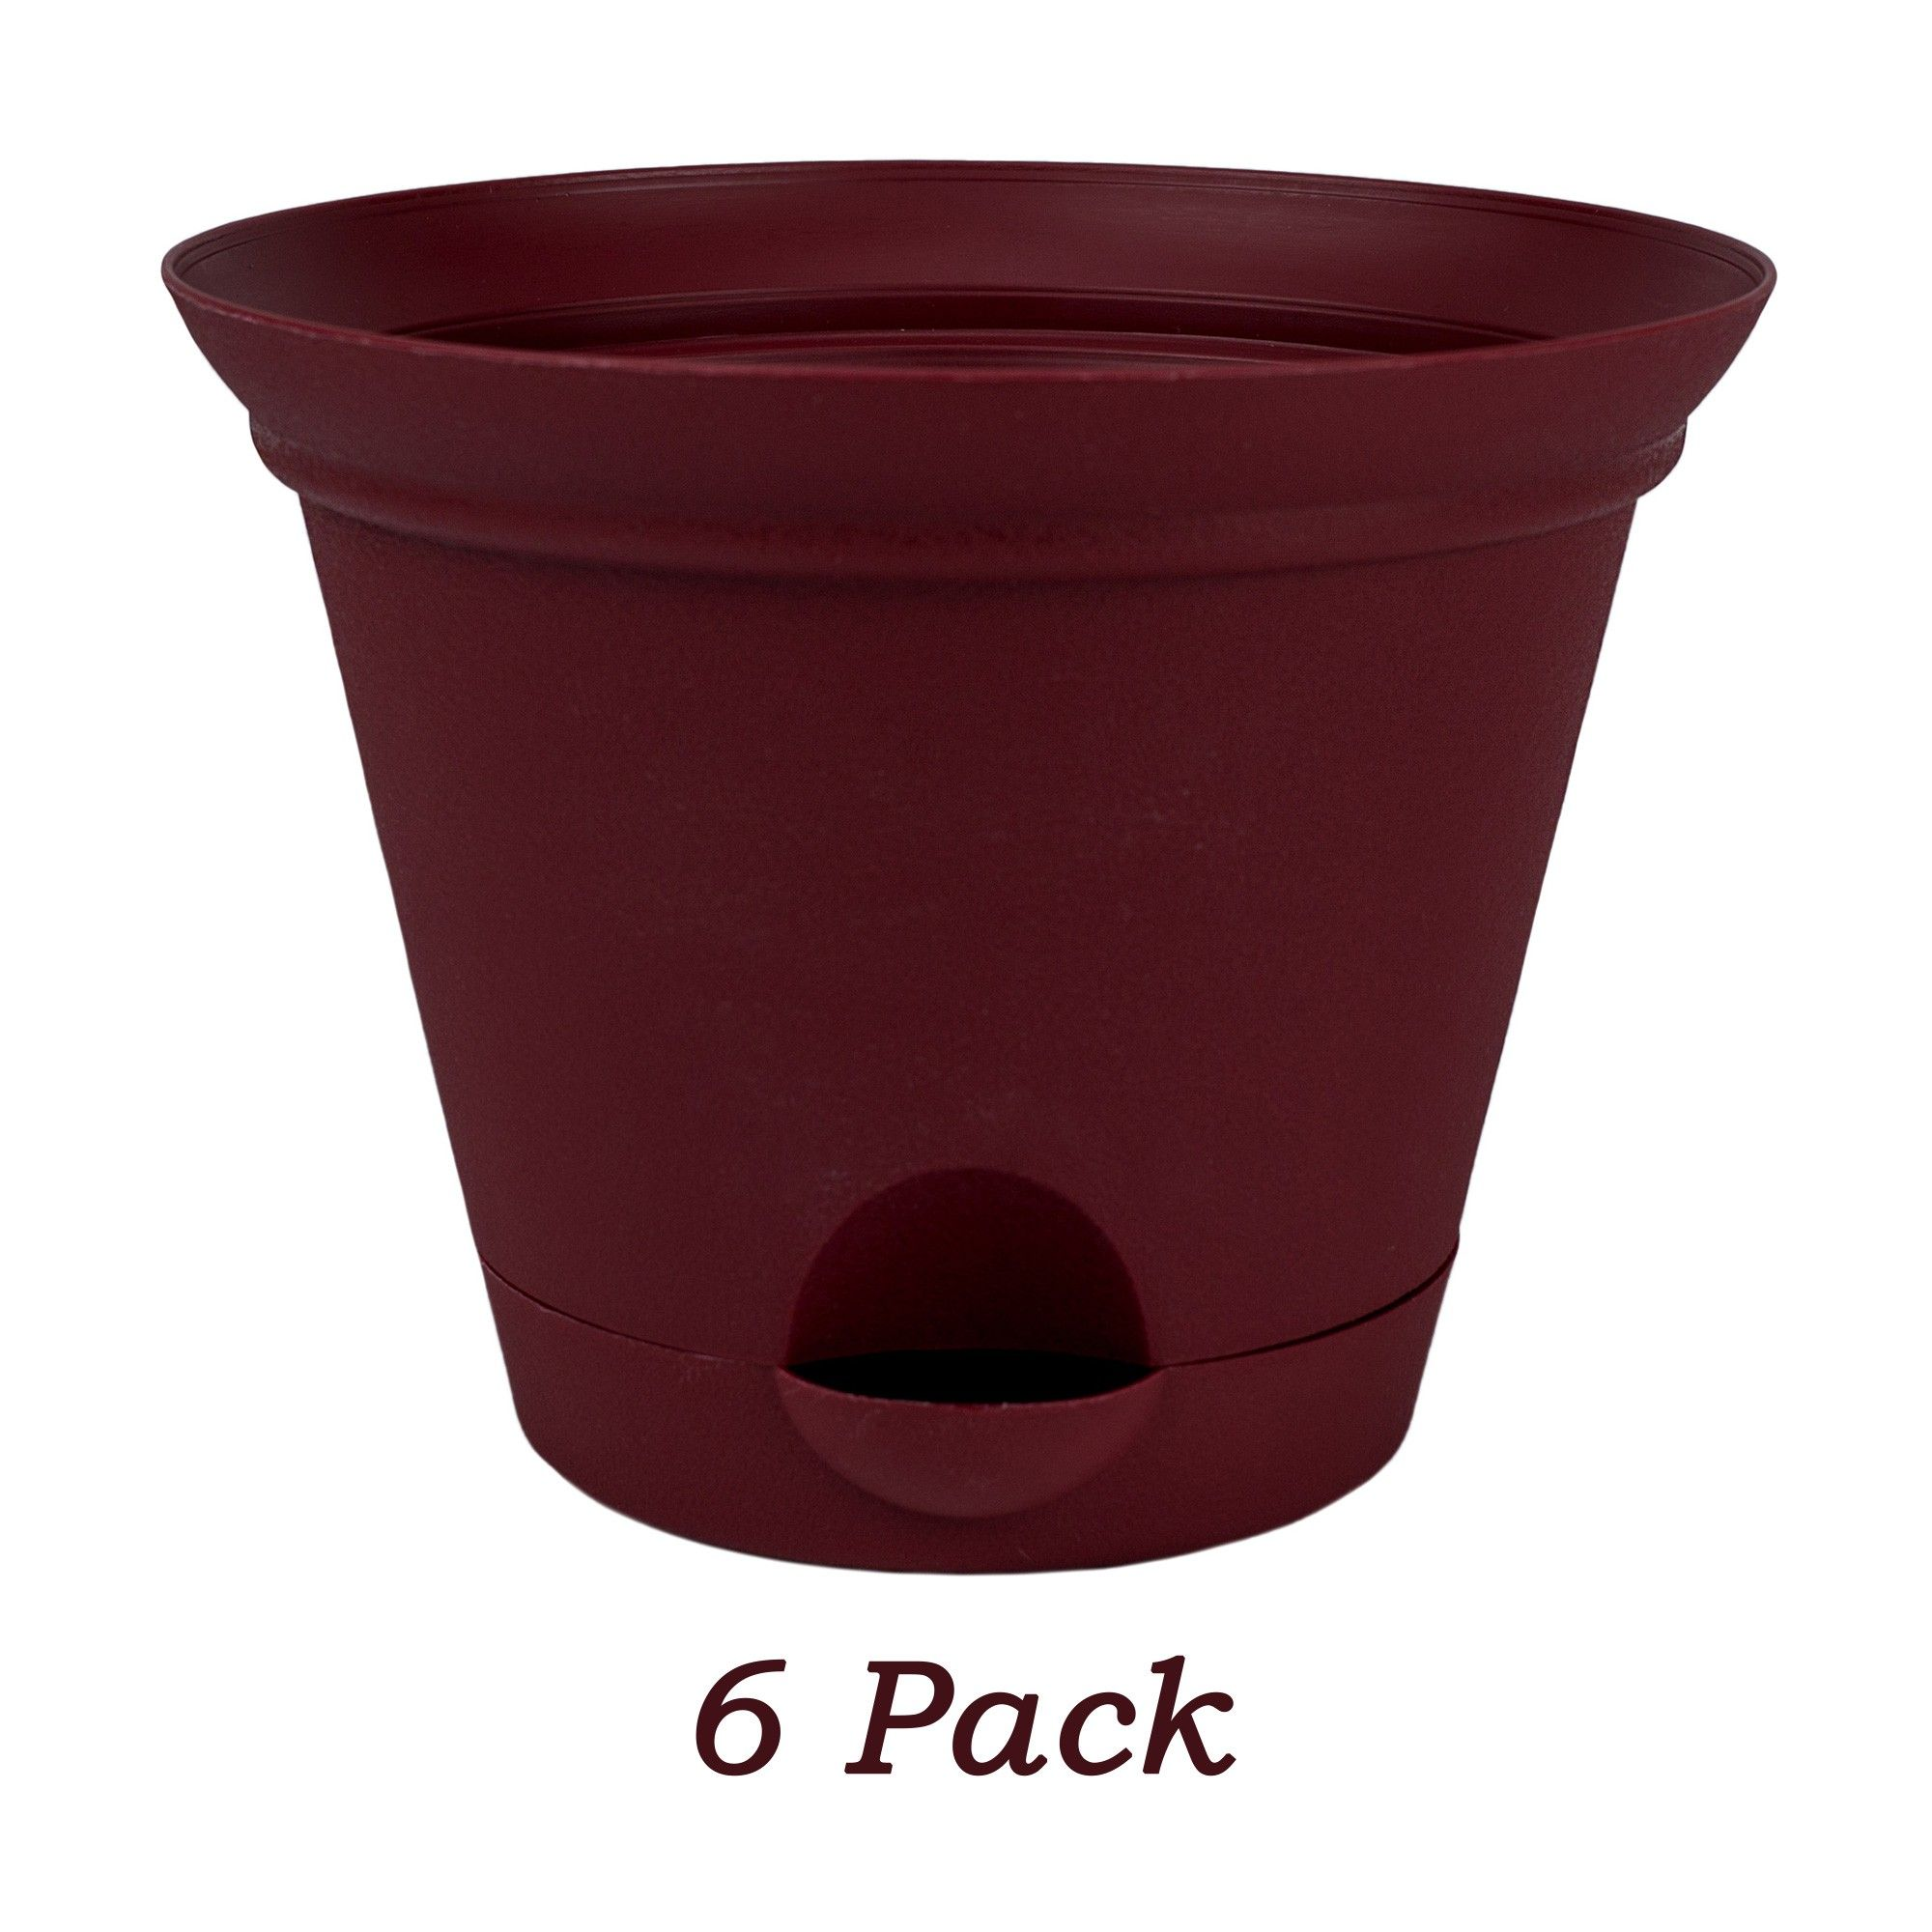 Misco 6 Pack 7 Inch Salsa Red Plastic Self Watering Flare Flower Pot Or Garden Planter Garden Planters Self Watering Flower Pots